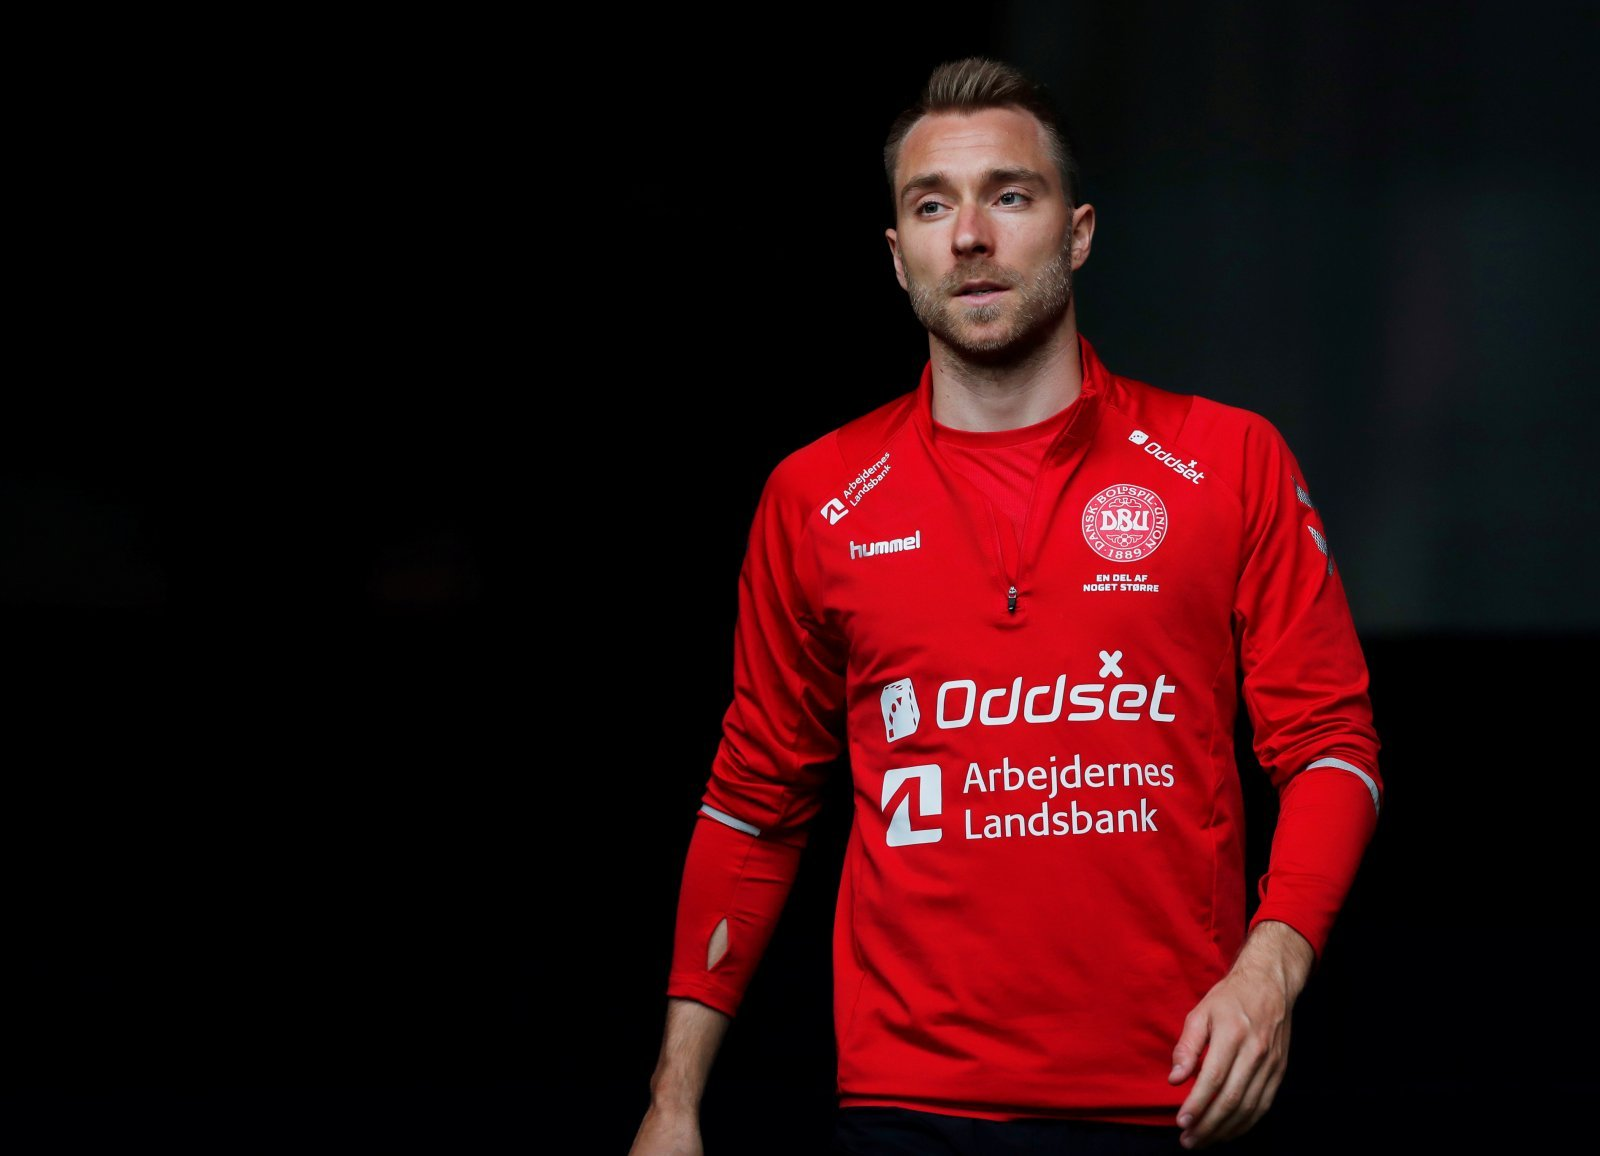 Tottenham: Christian Eriksen risks an unfortunate transfer limbo